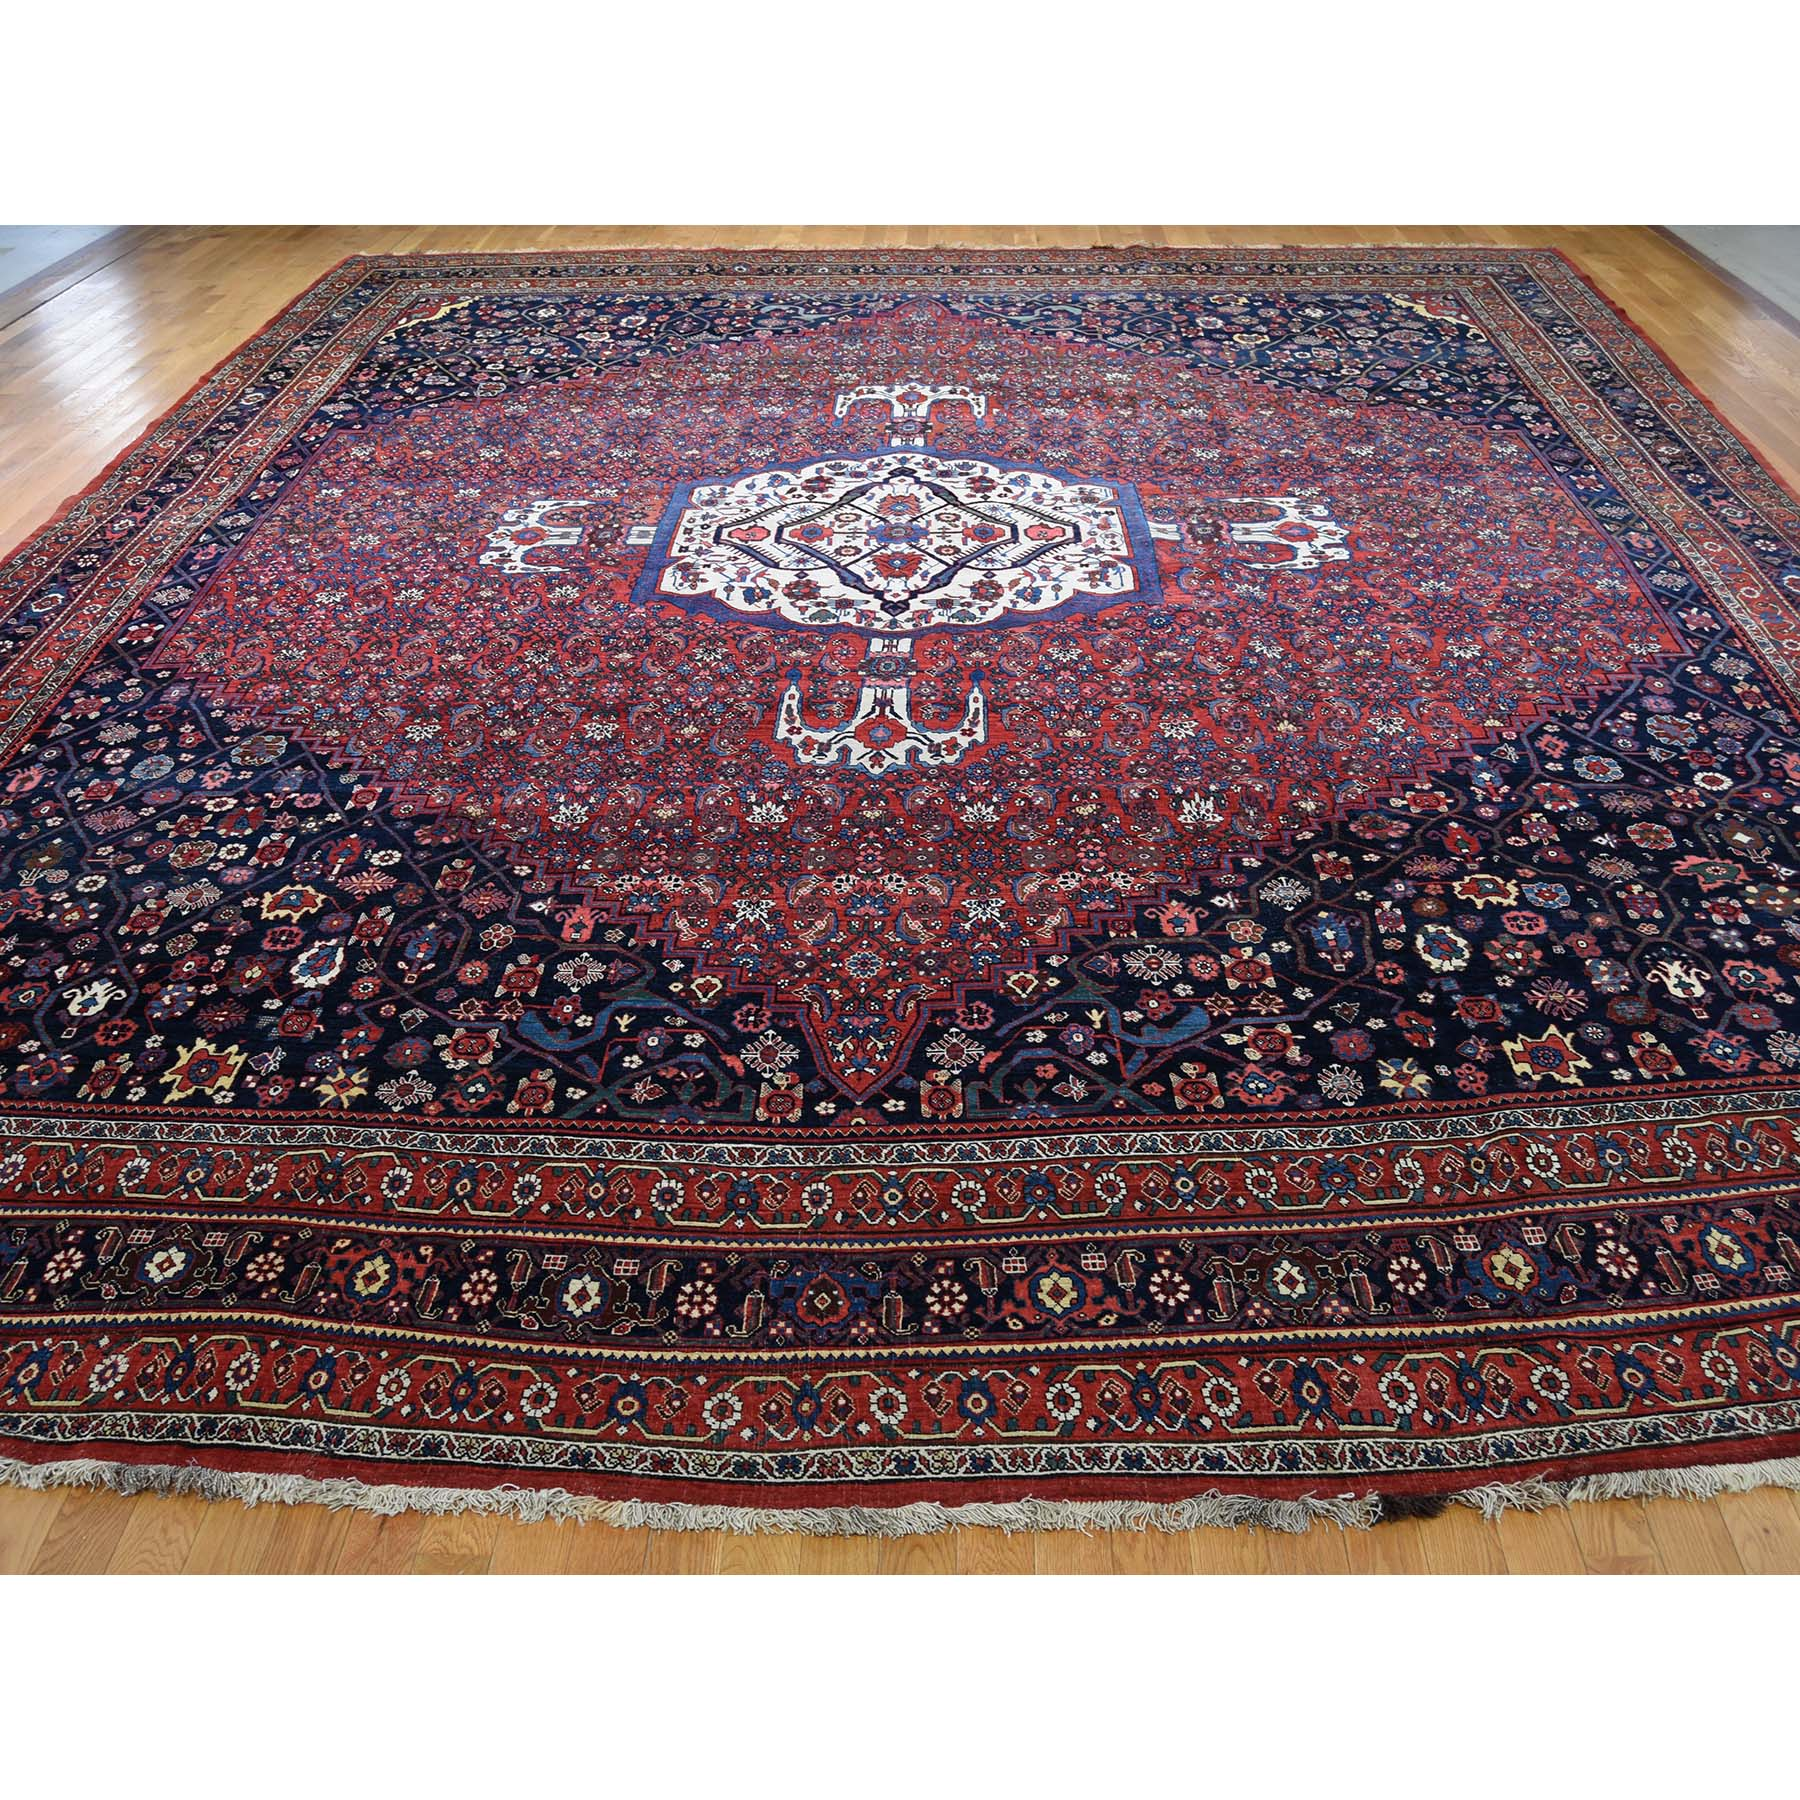 "14'6""x19' Antique Persian Bijar Pure Wool Exc Condition Oversize Pure Wool Hand-Knotted Oriental Rug"